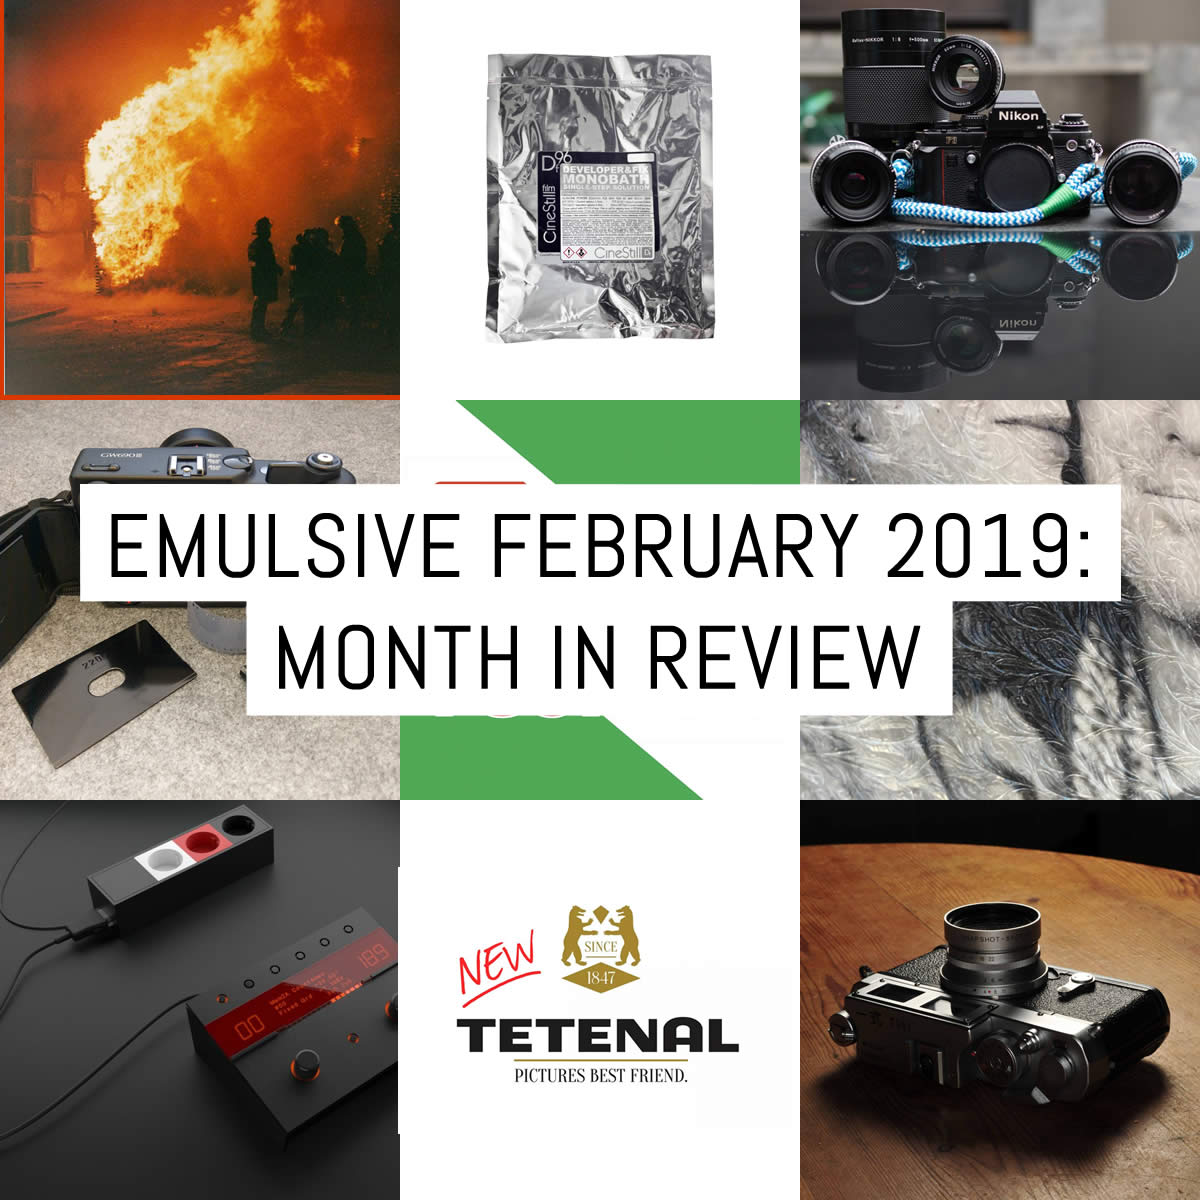 EMULSIVE February 2019: month in review | EMULSIVE